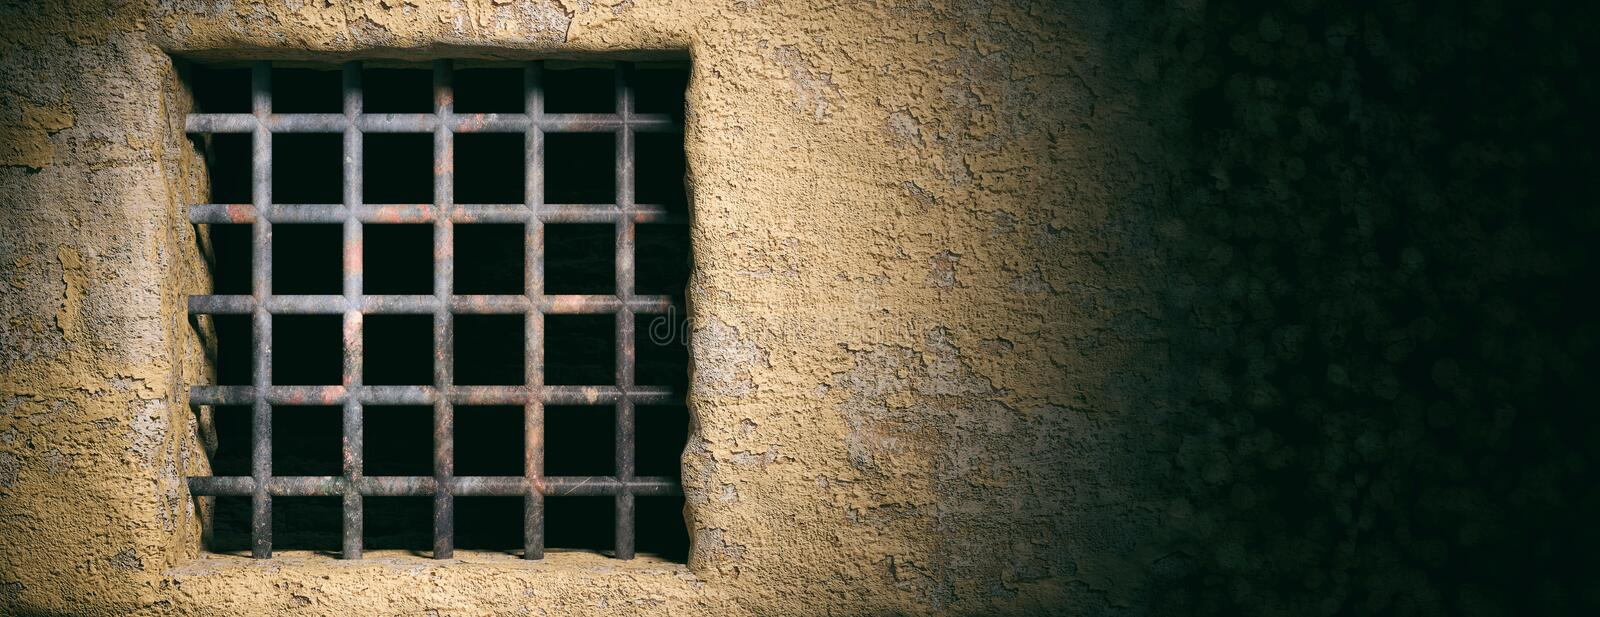 Prison, jail window with rusty bars on old wall background. Banner, copy space. 3d illustration. Prison, jail window with rusty bars on old wall background stock photos